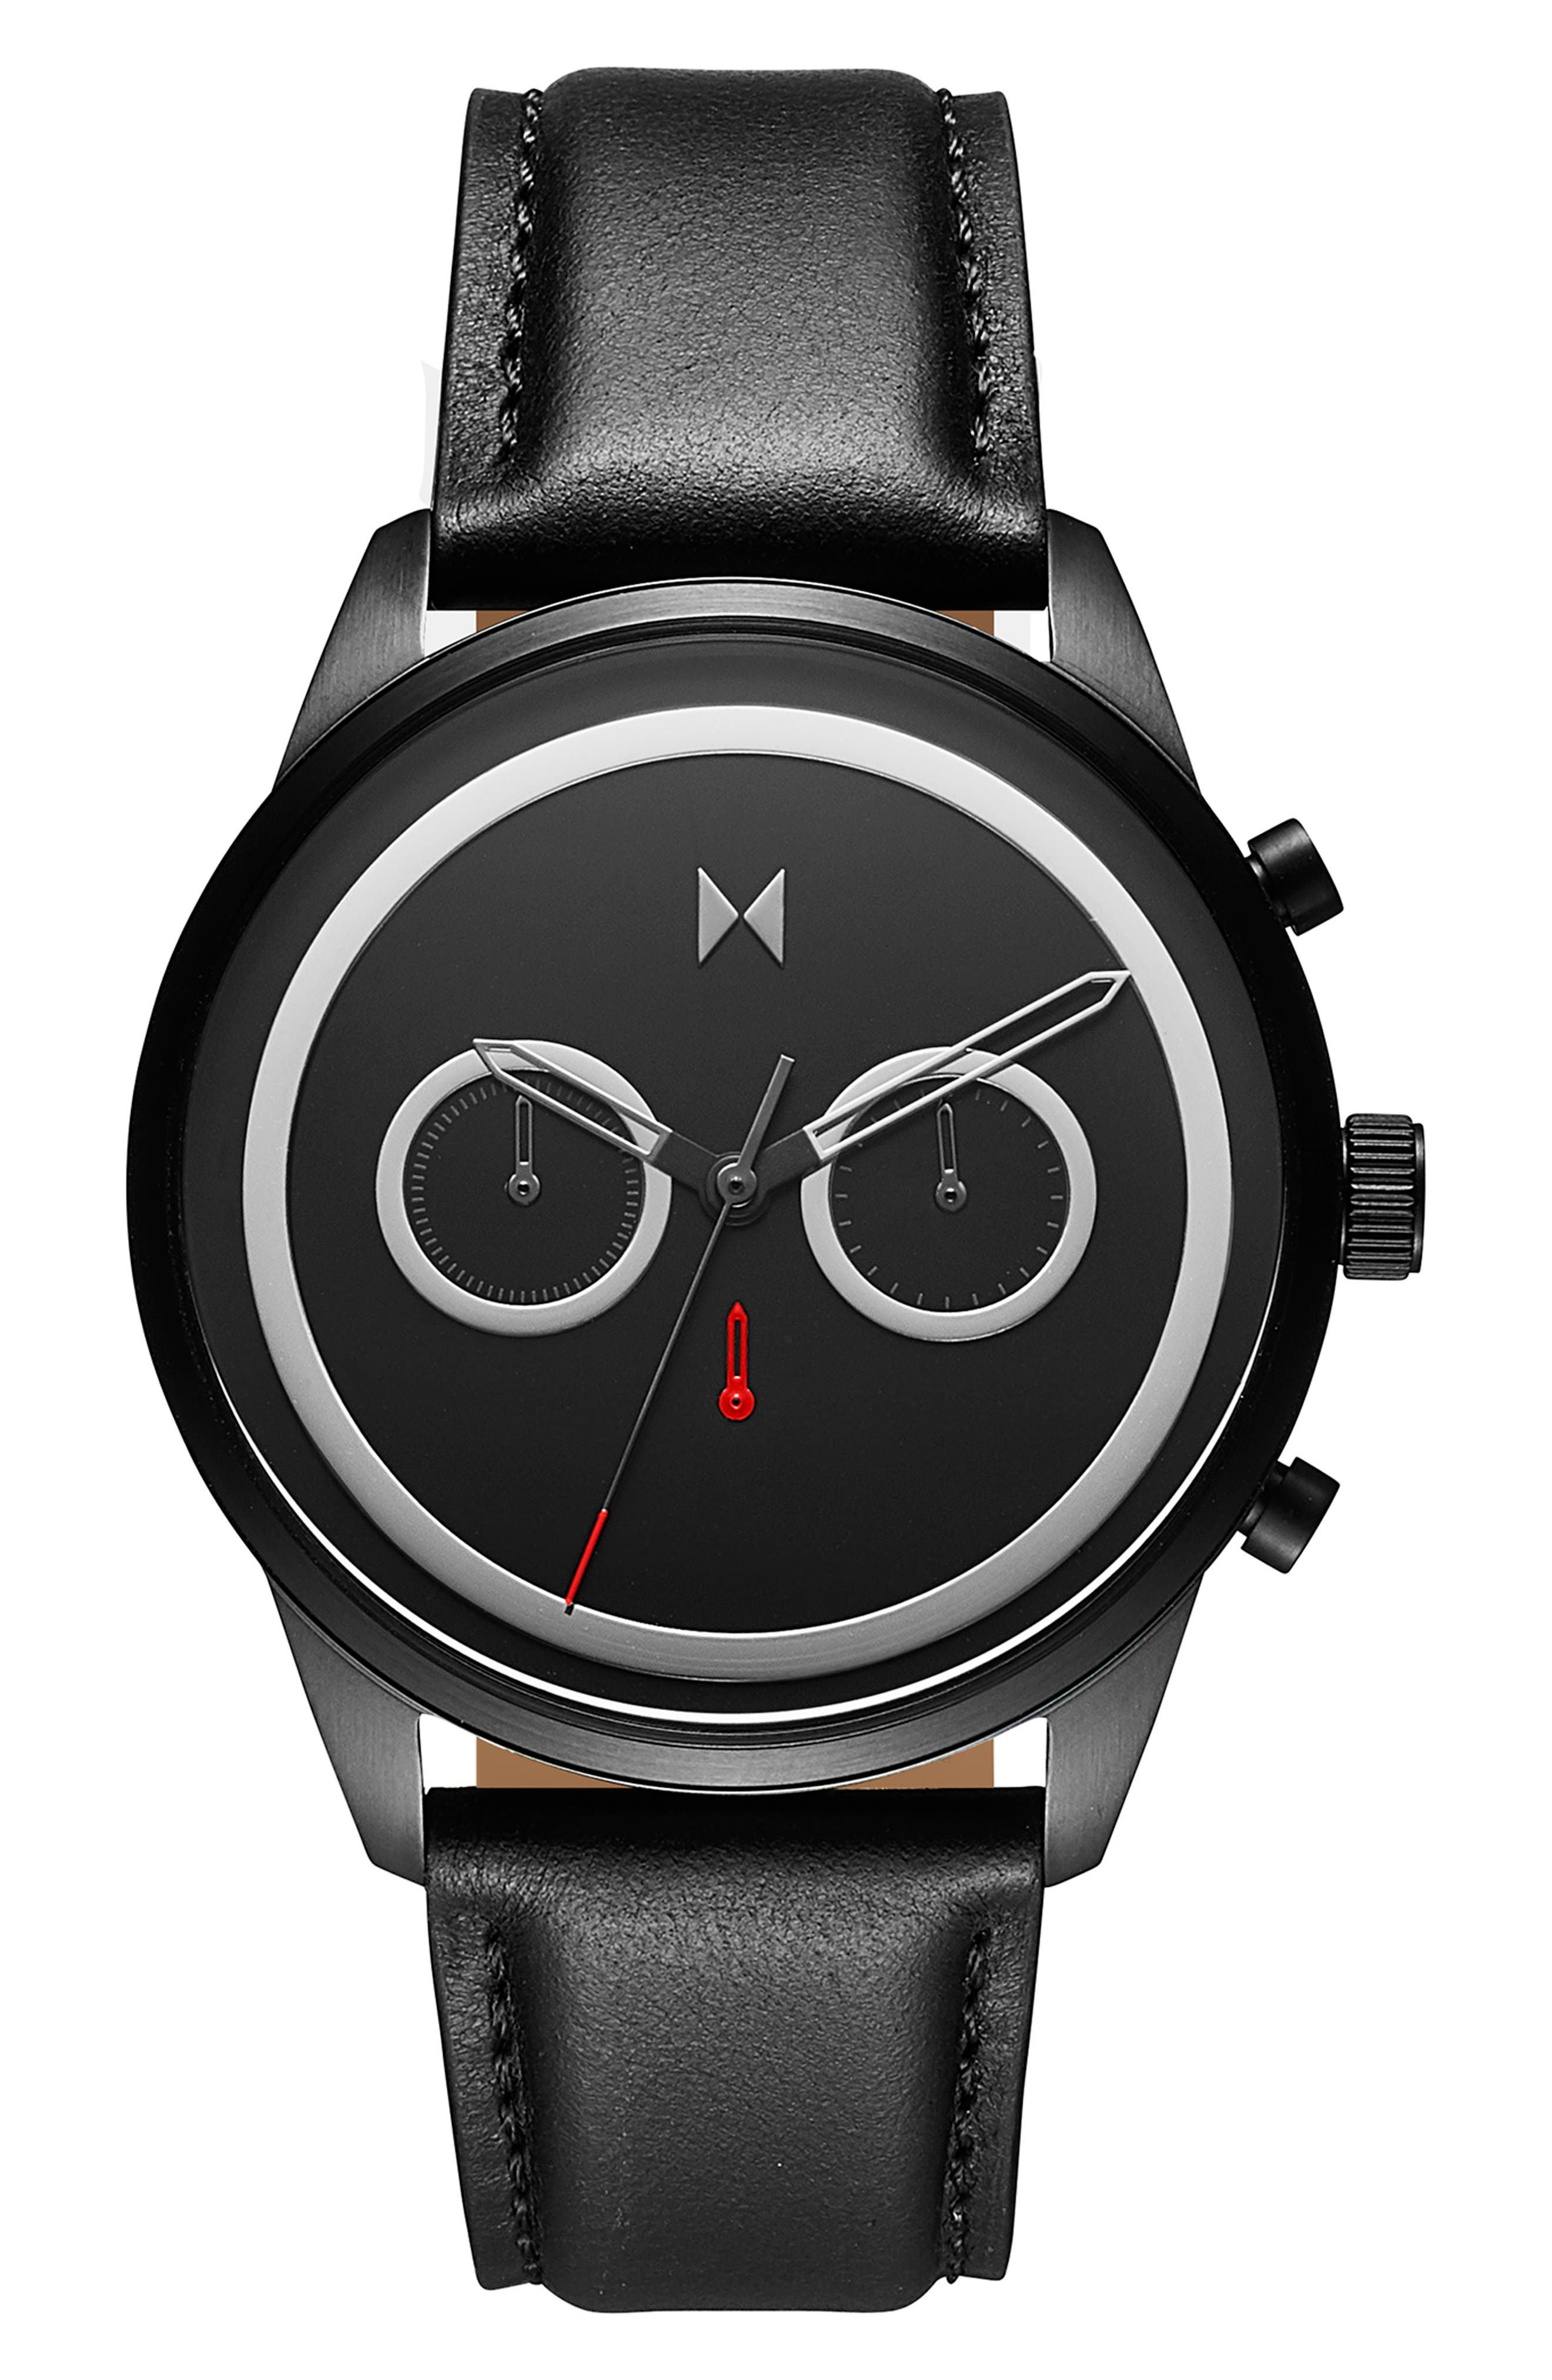 Sportluxe Chronograph Leather Strap Watch